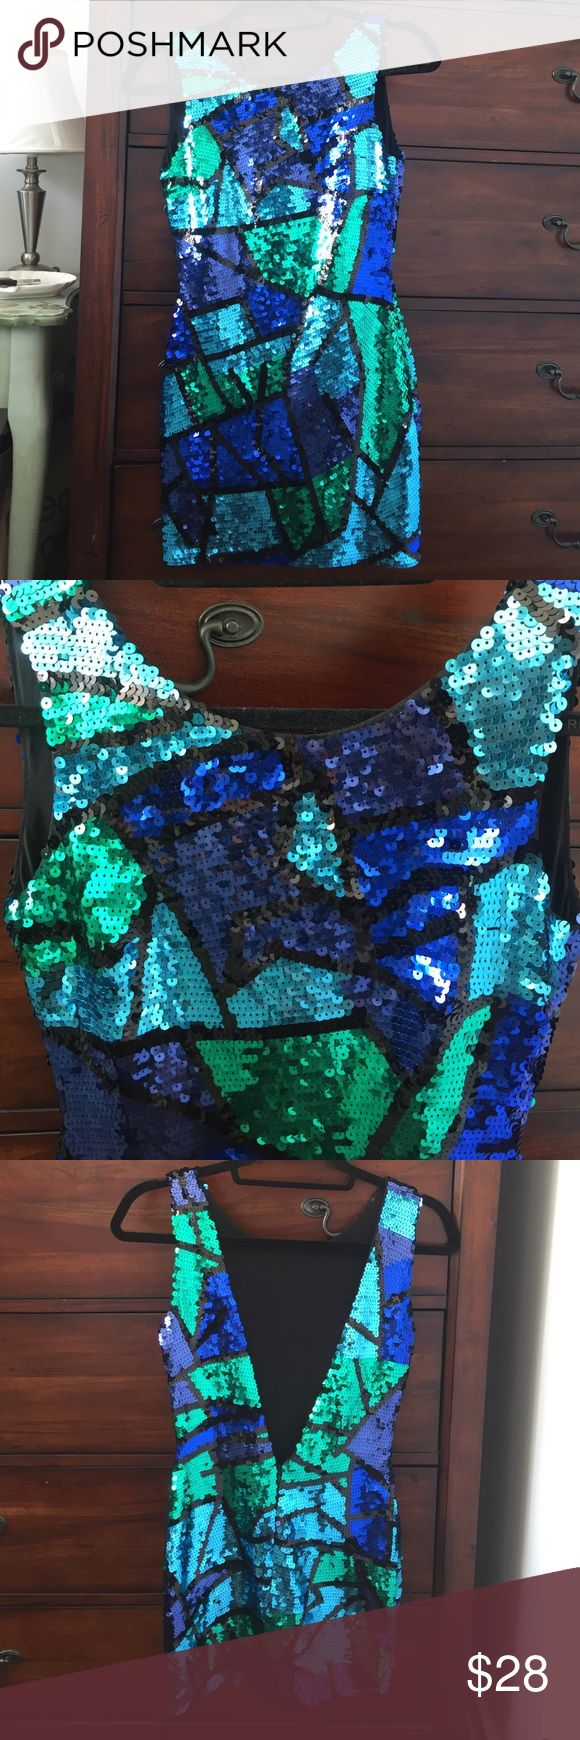 Asos Petite sequin dress Asos Petite blue, green and black sequin dress with low back. Never worn. ASOS Petite Dresses Mini